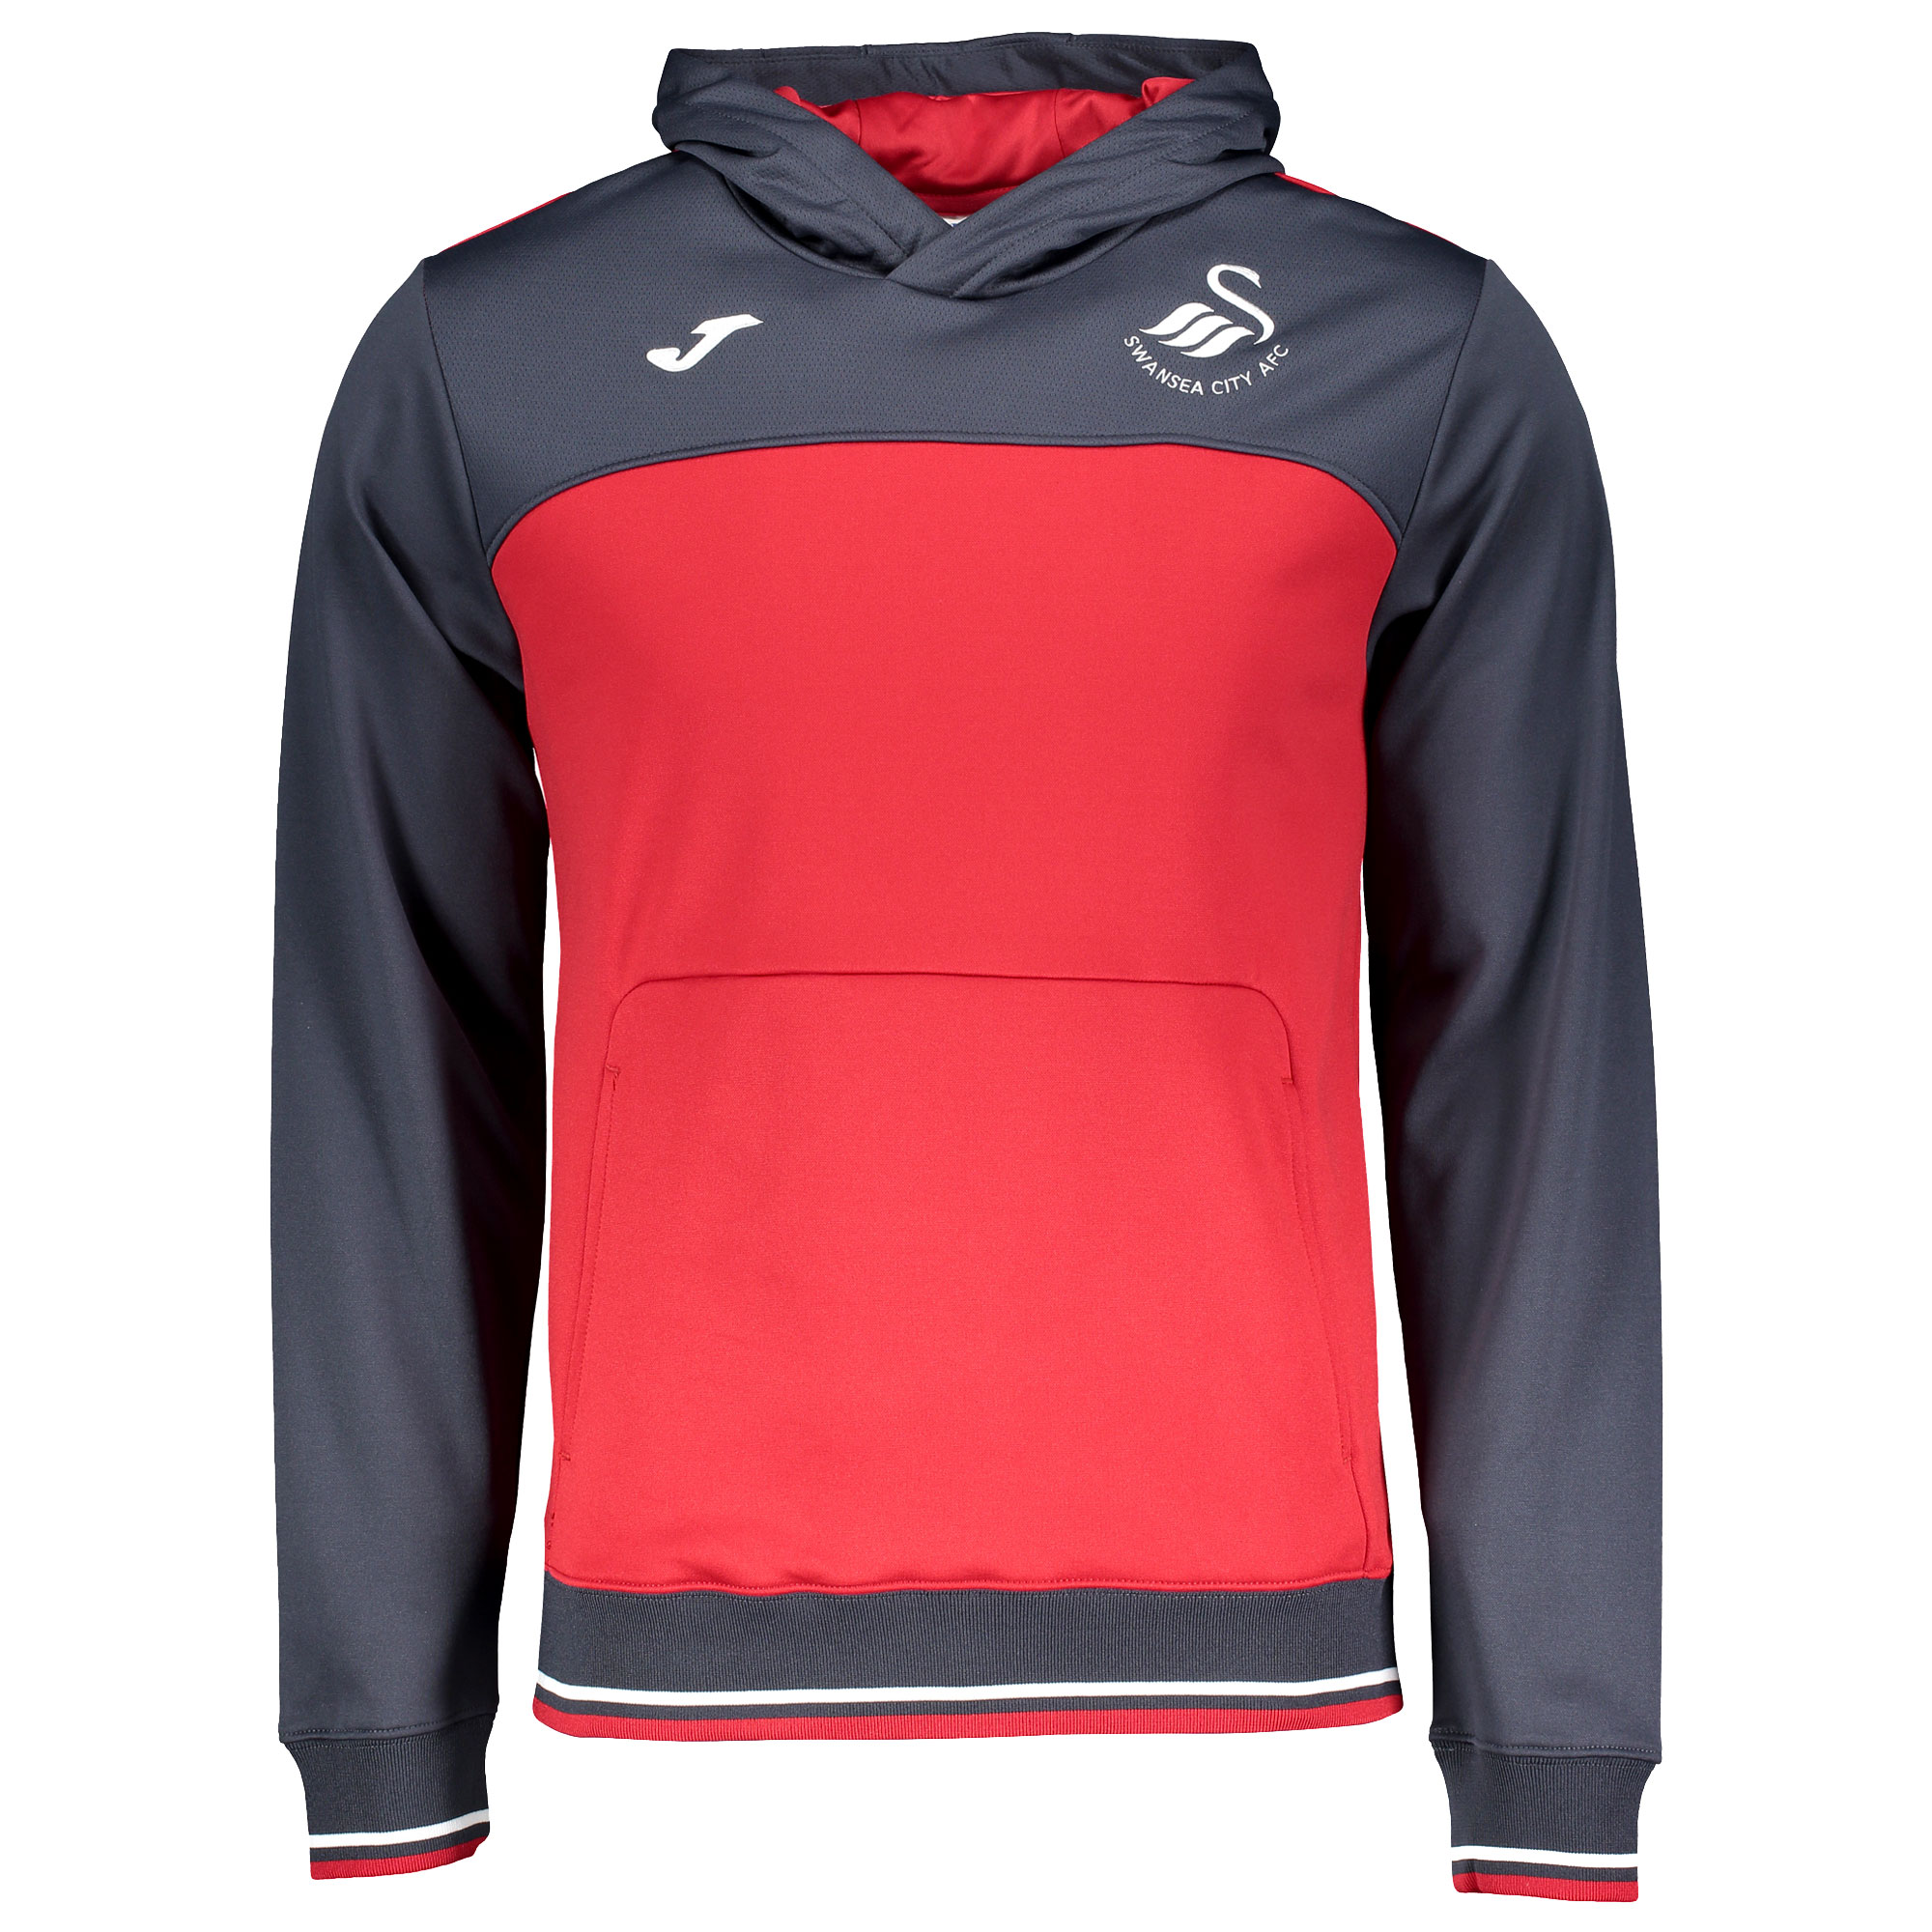 Swansea City Training Hoodie 2017 / 2018 - Red/Grey - M